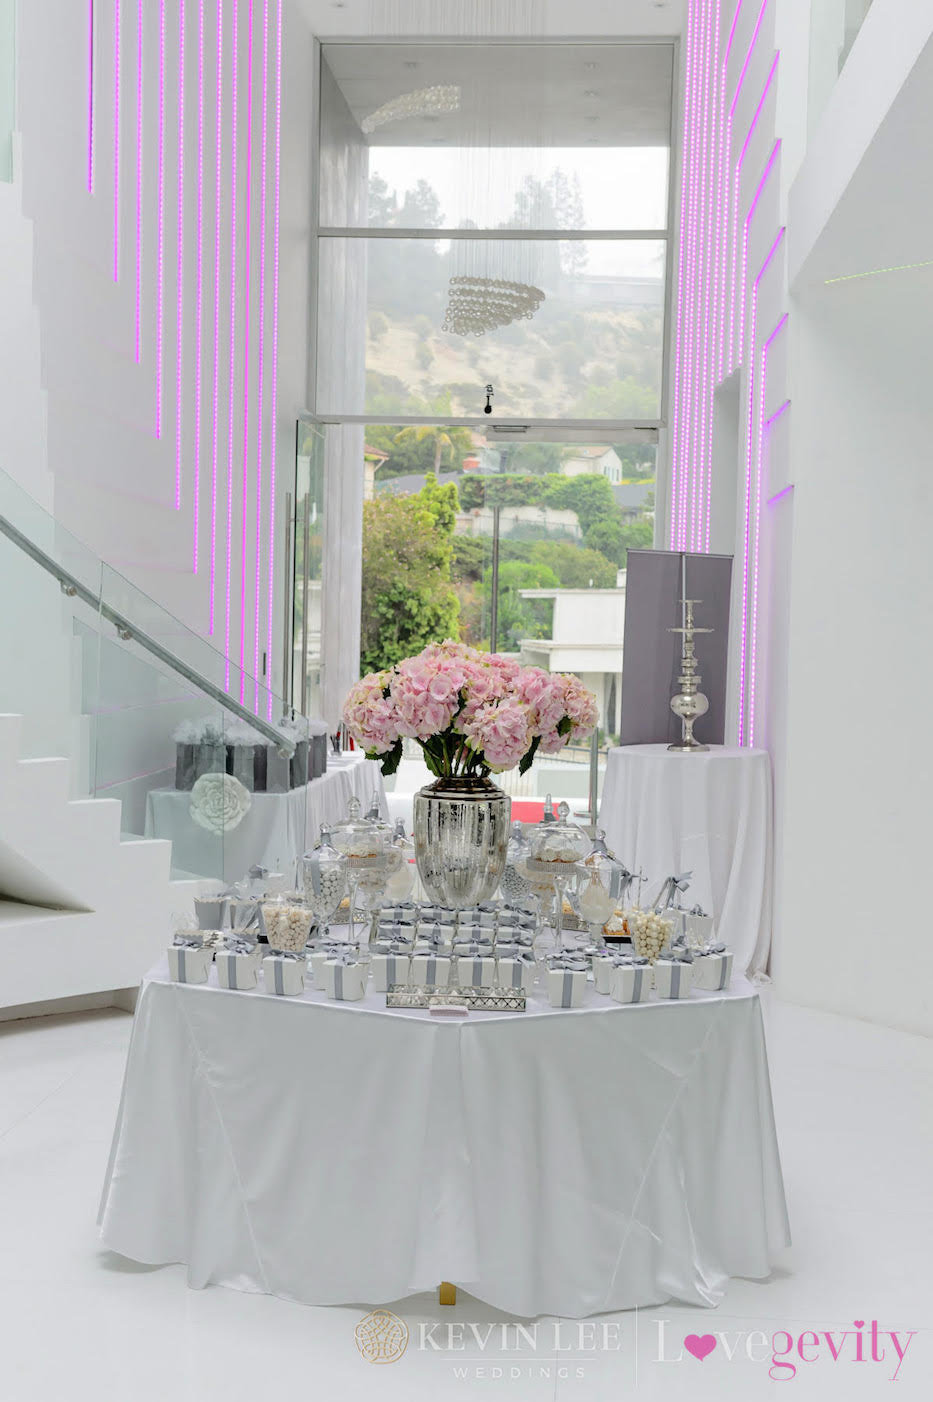 Lovegevity Wedding Planning Insute   Pink And Silver Hollywood Weddings With Kevin Lee Workshop